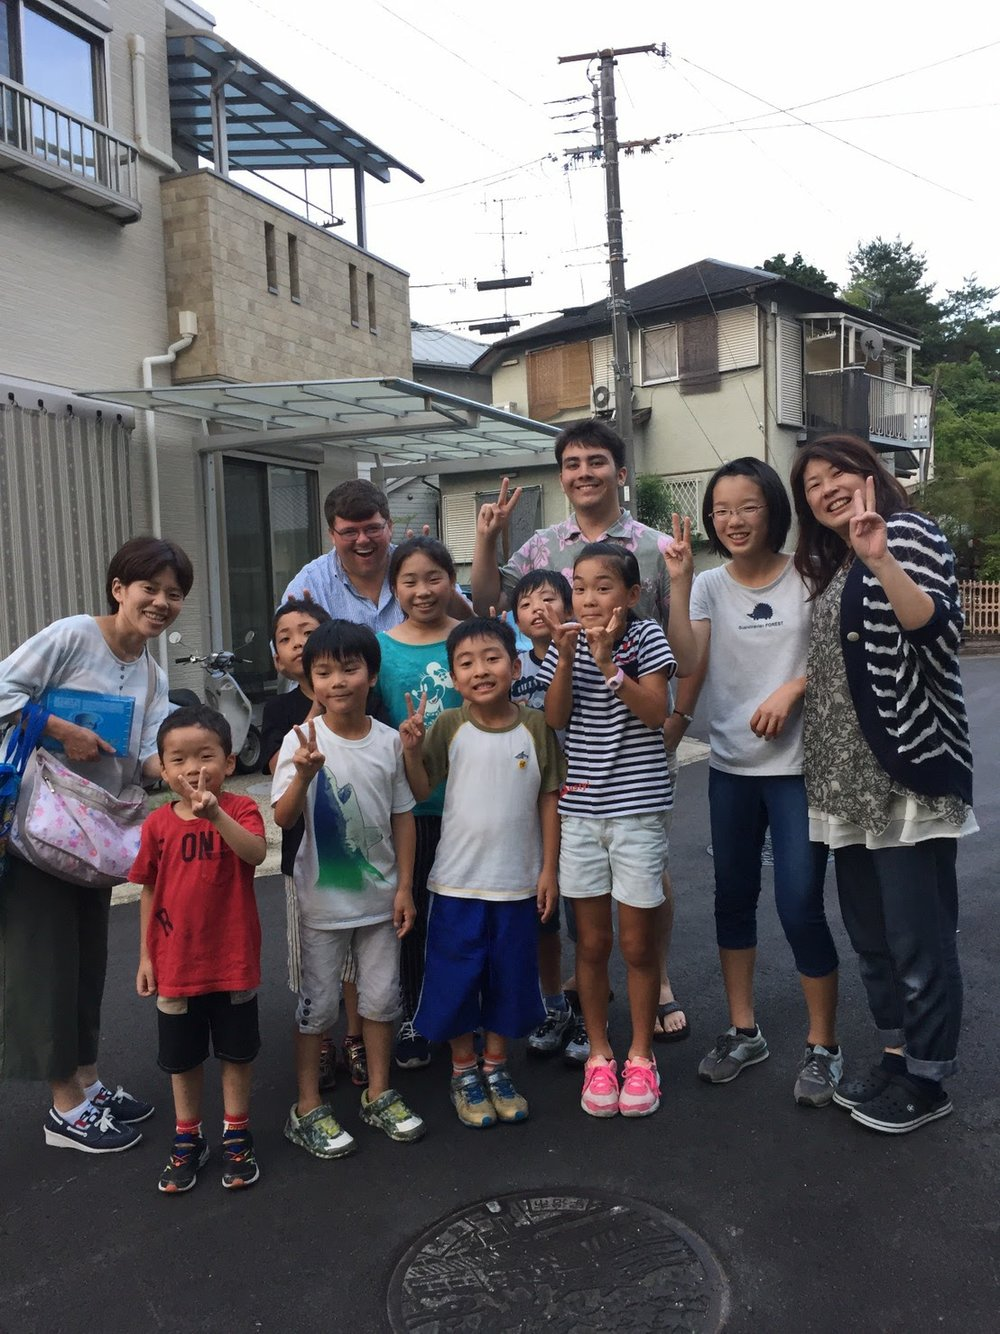 The neighborhood children quickly warmed up to the two new foreigners in their neighbor